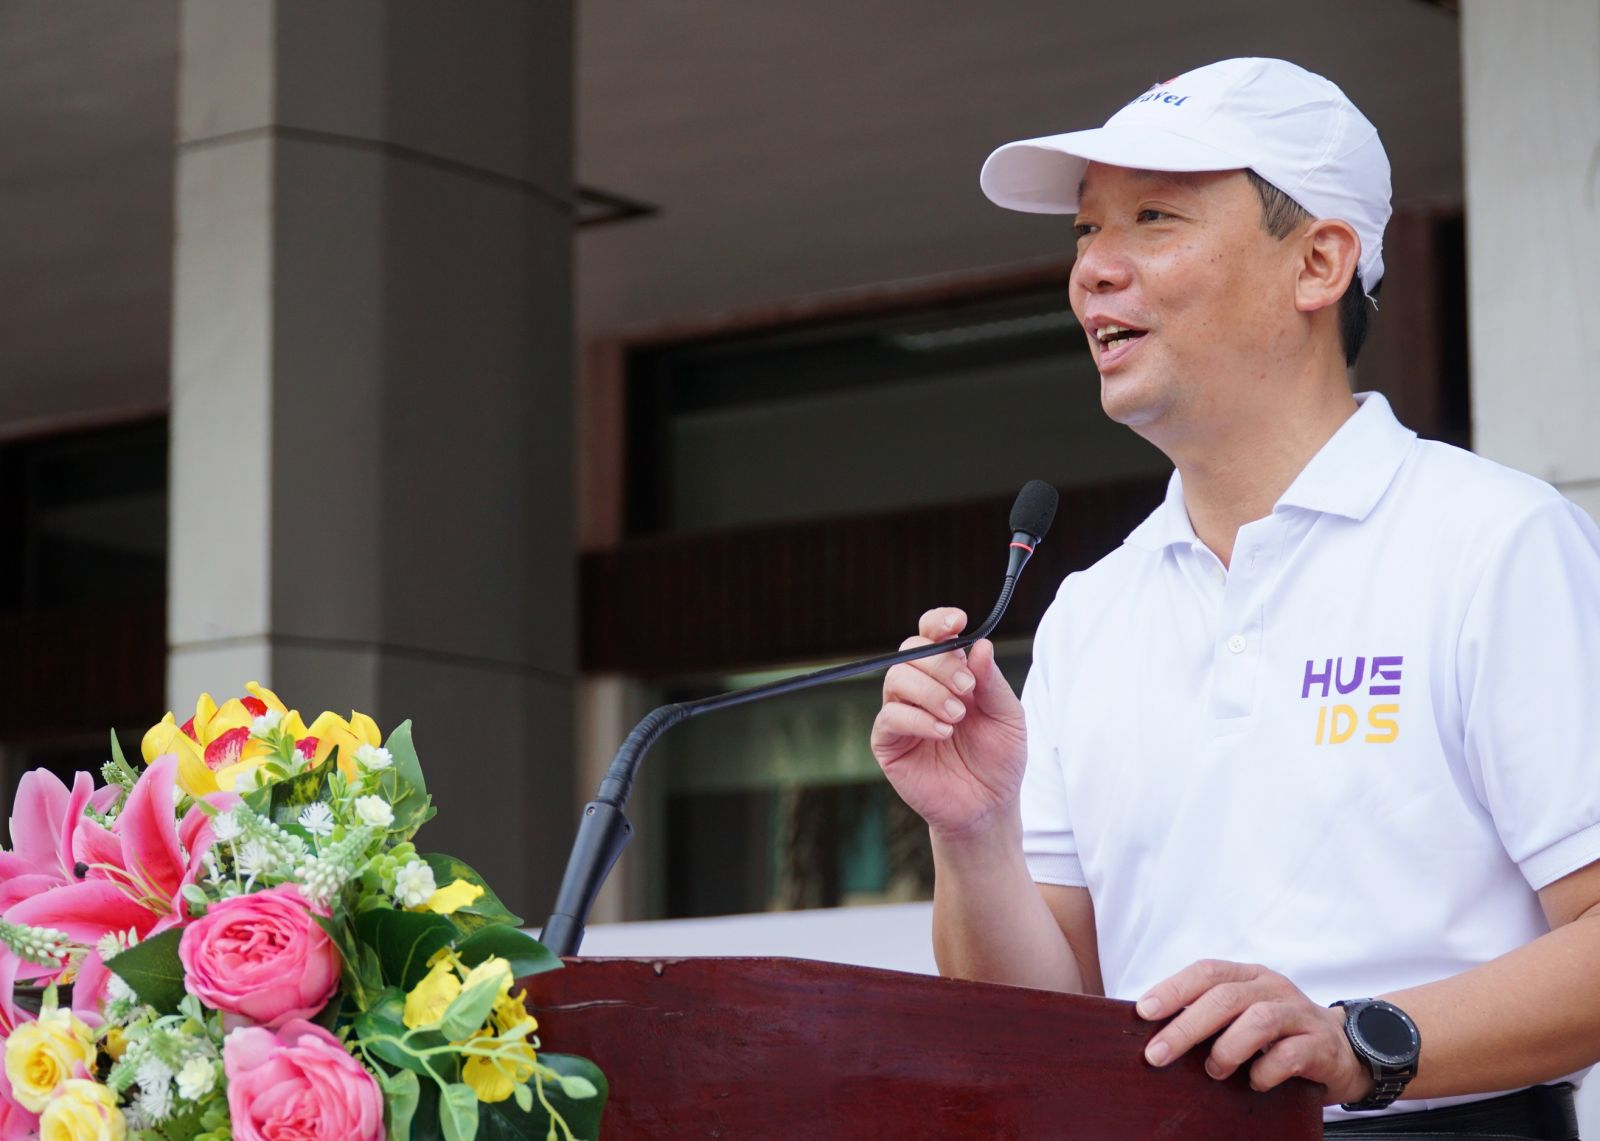 Vice Chairman of the provincial People's Committee Phan Thien Dinh highly appreciated the awareness of environmental protection through the